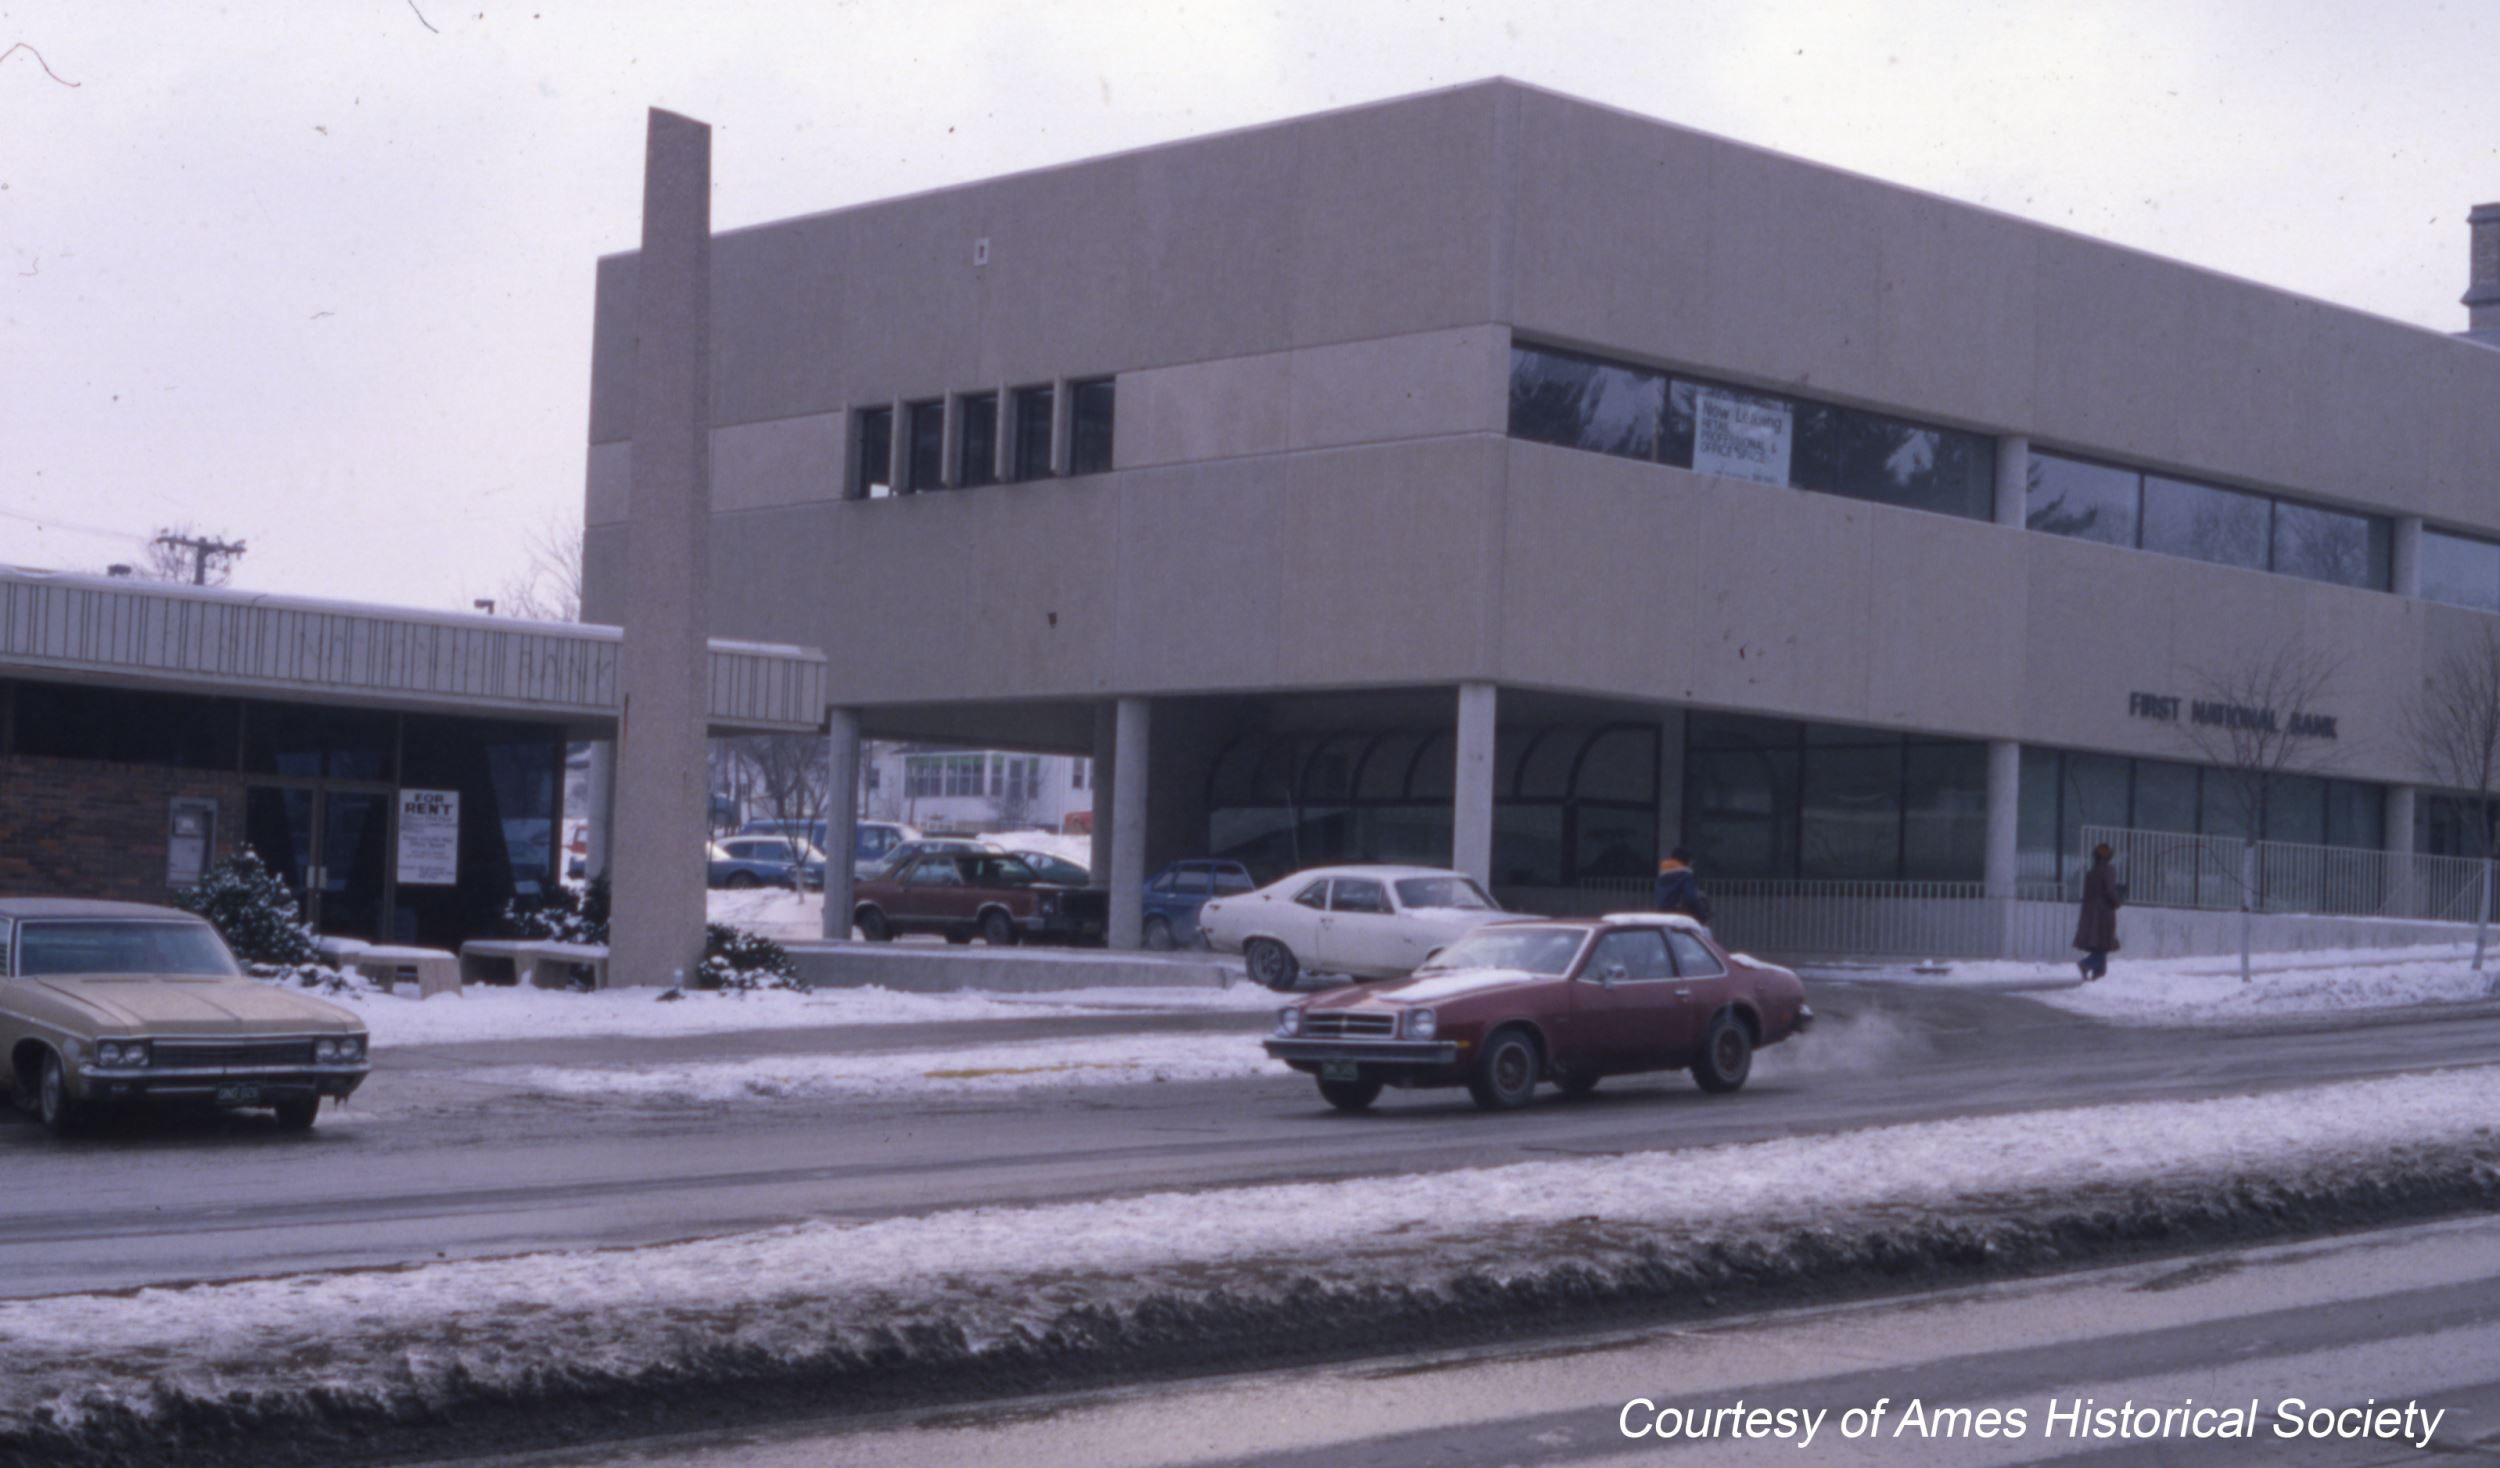 1977 Lincoln Way location pic